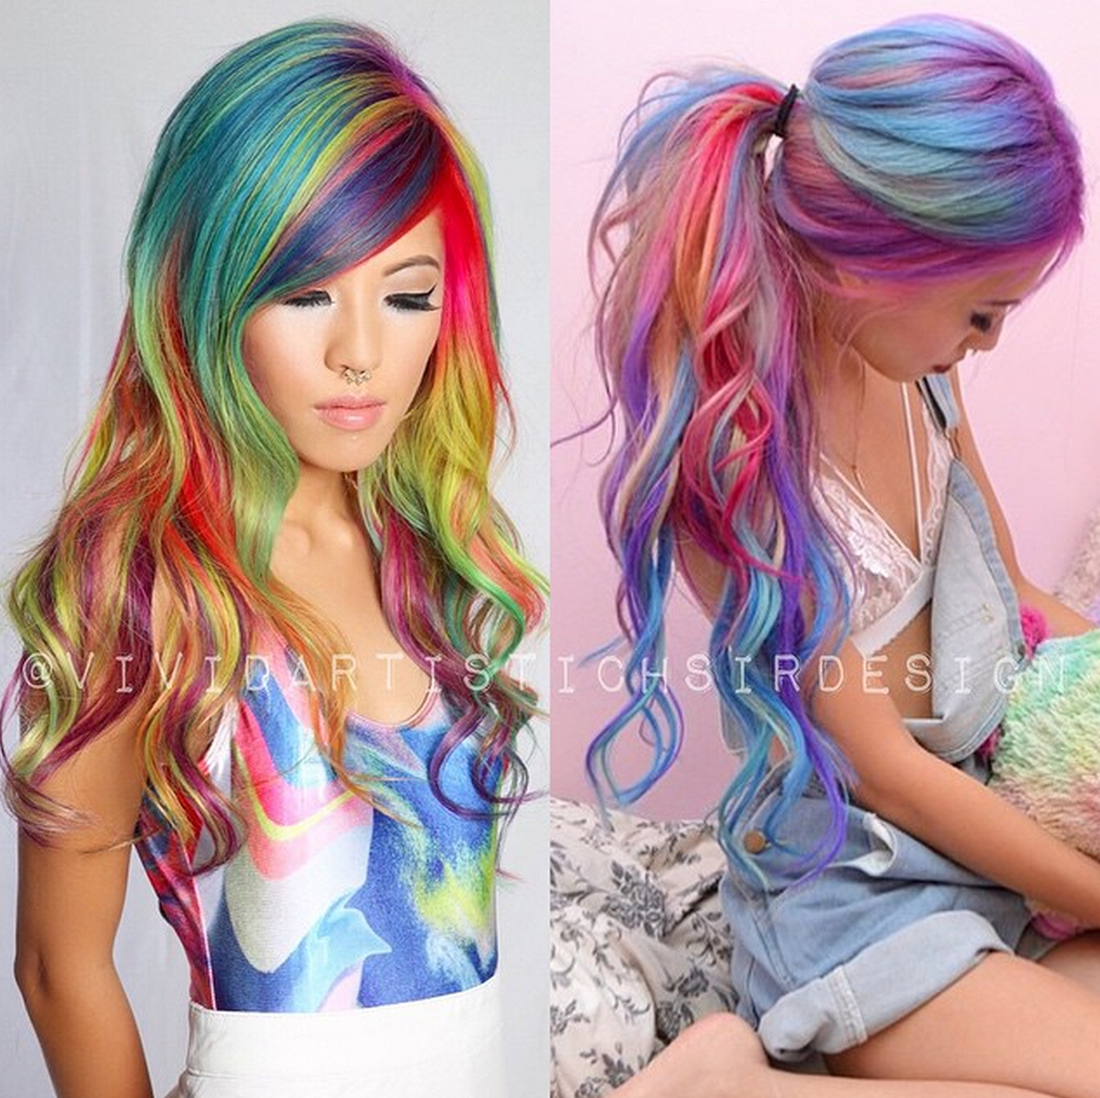 Art color hair - Sand Art Hair Is The New Hair Color Trend You Need To Try